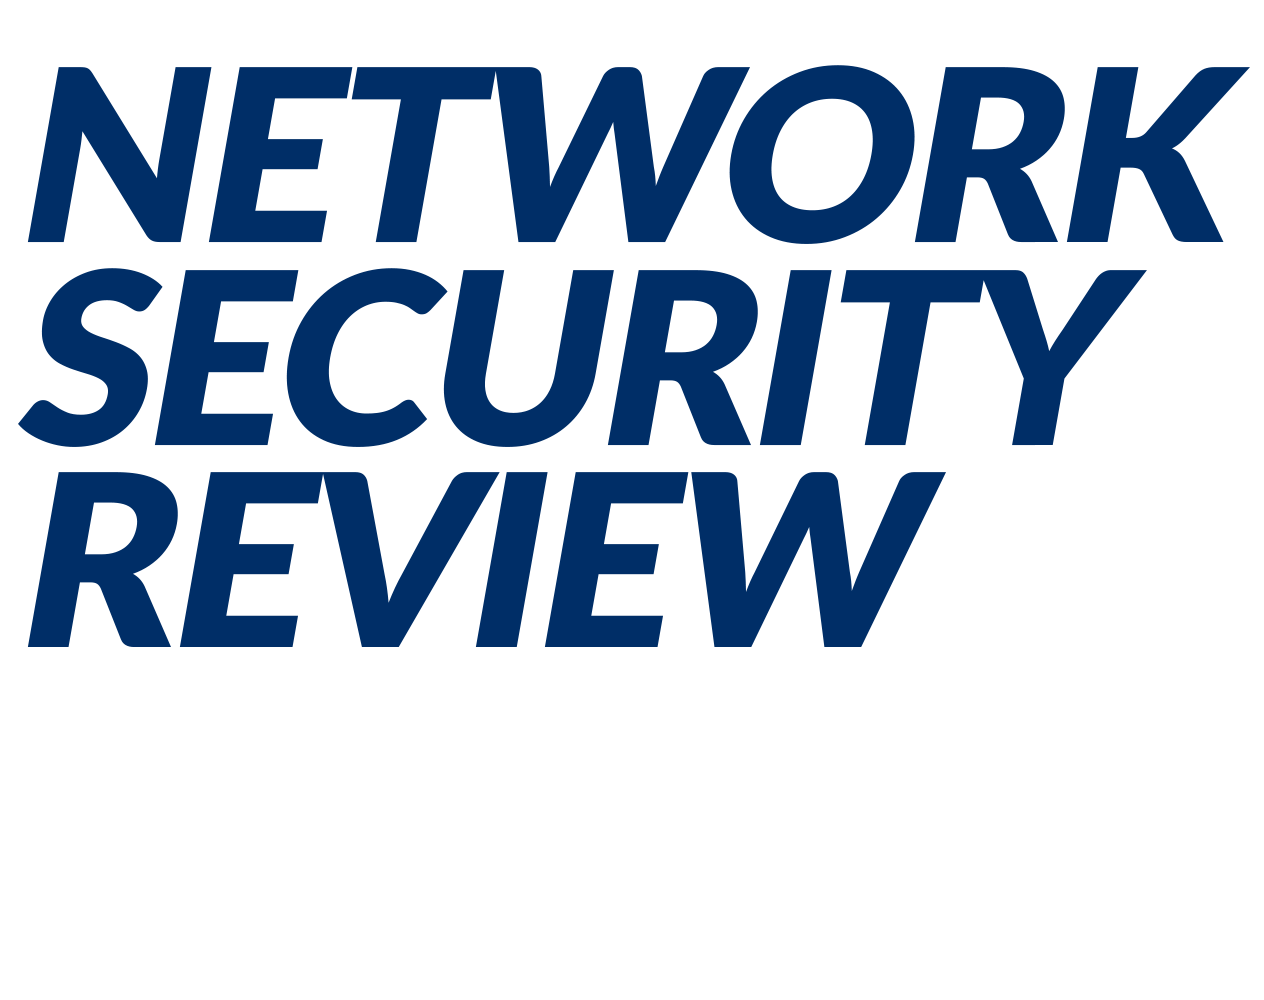 Network security review2.png